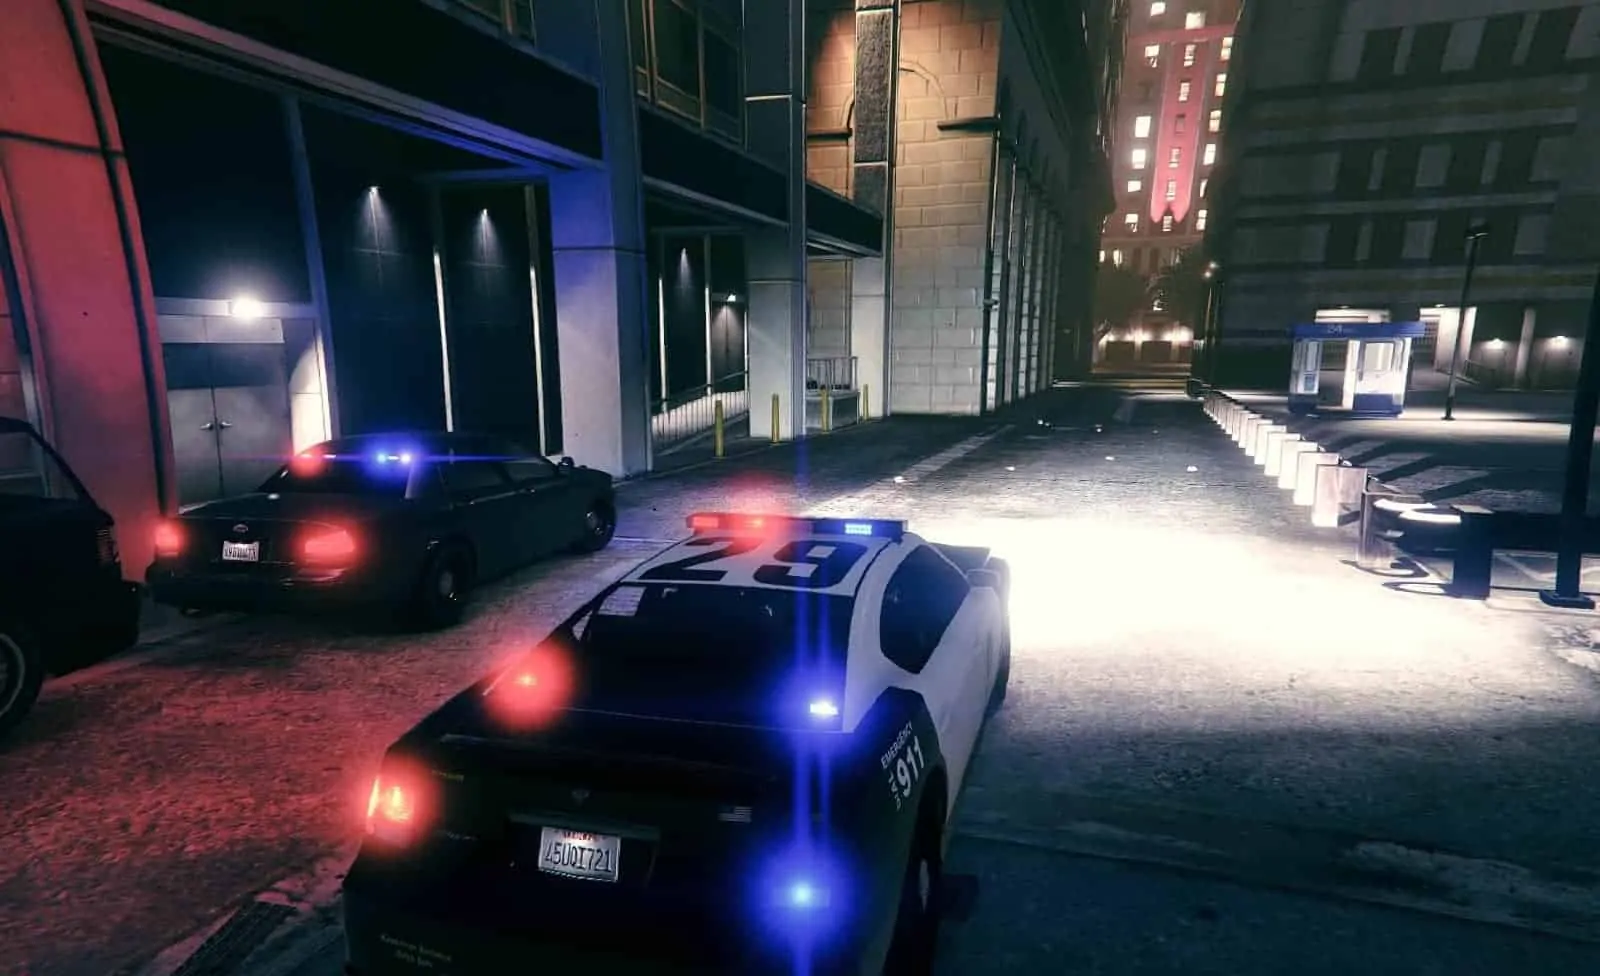 Grab A Donut With This New GTA V Police Mod - GTA BOOM